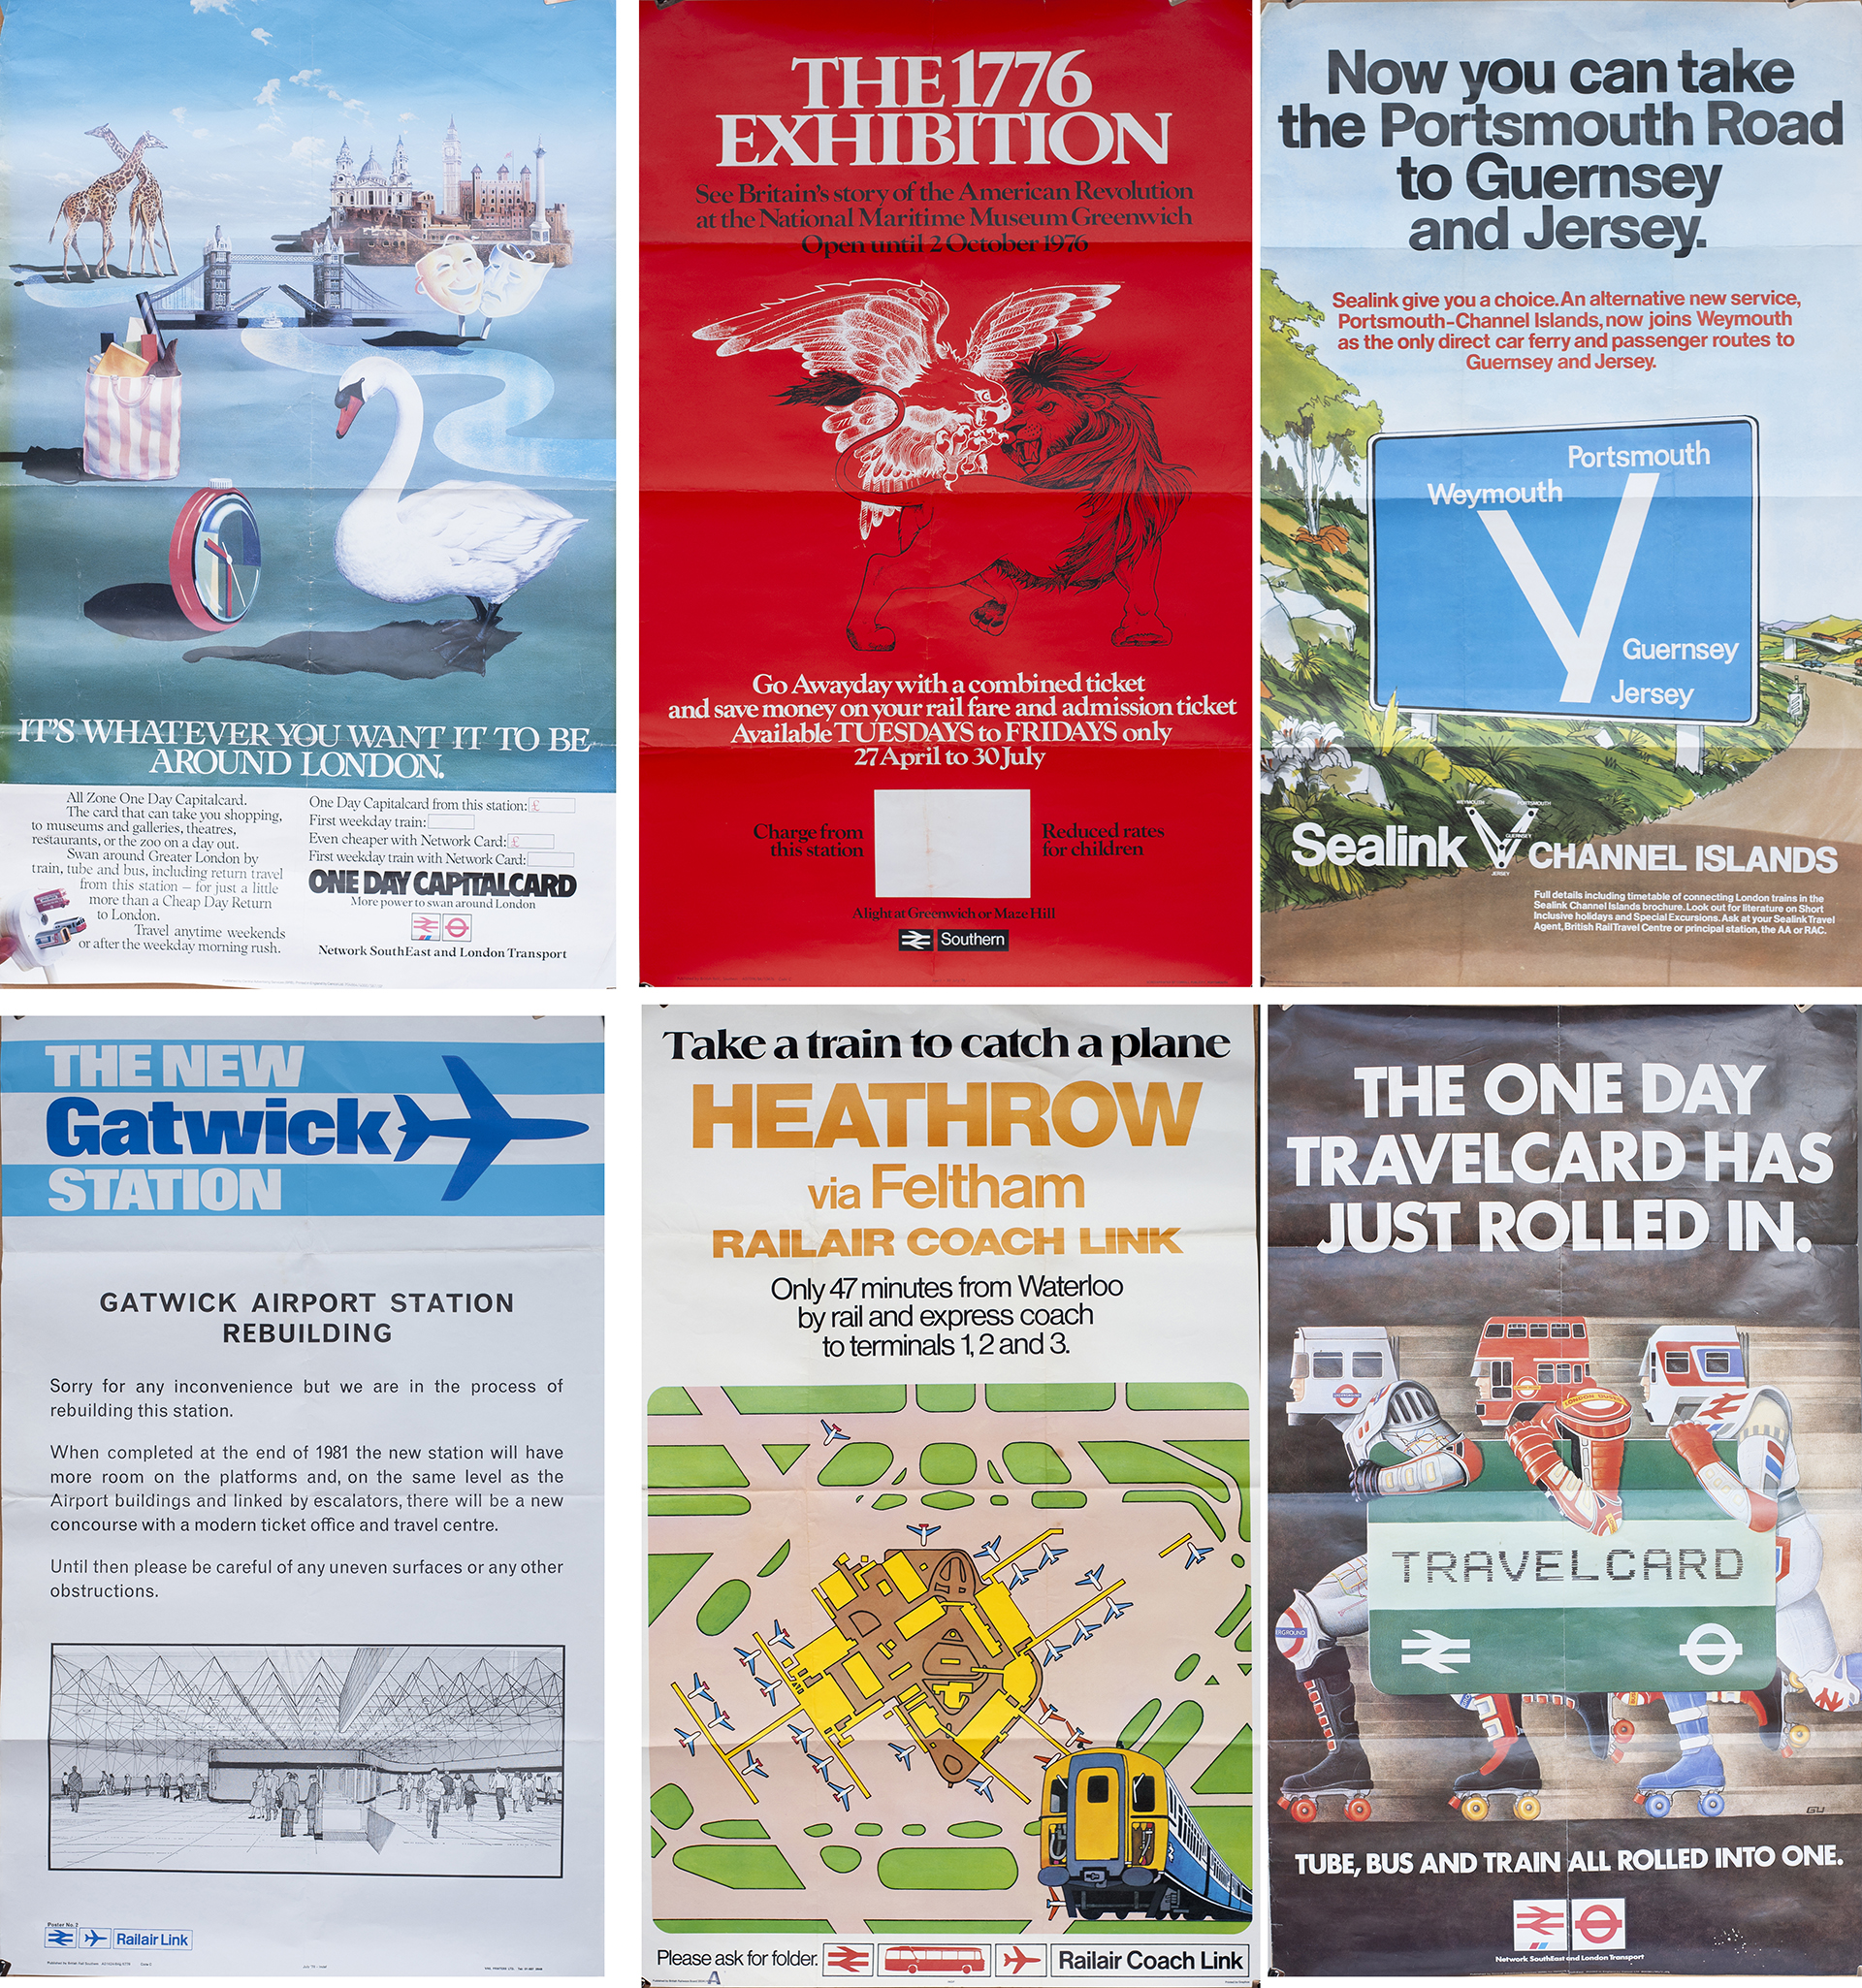 20 Posters to include Network South East, London Transport, British Railways, Channel Islands,